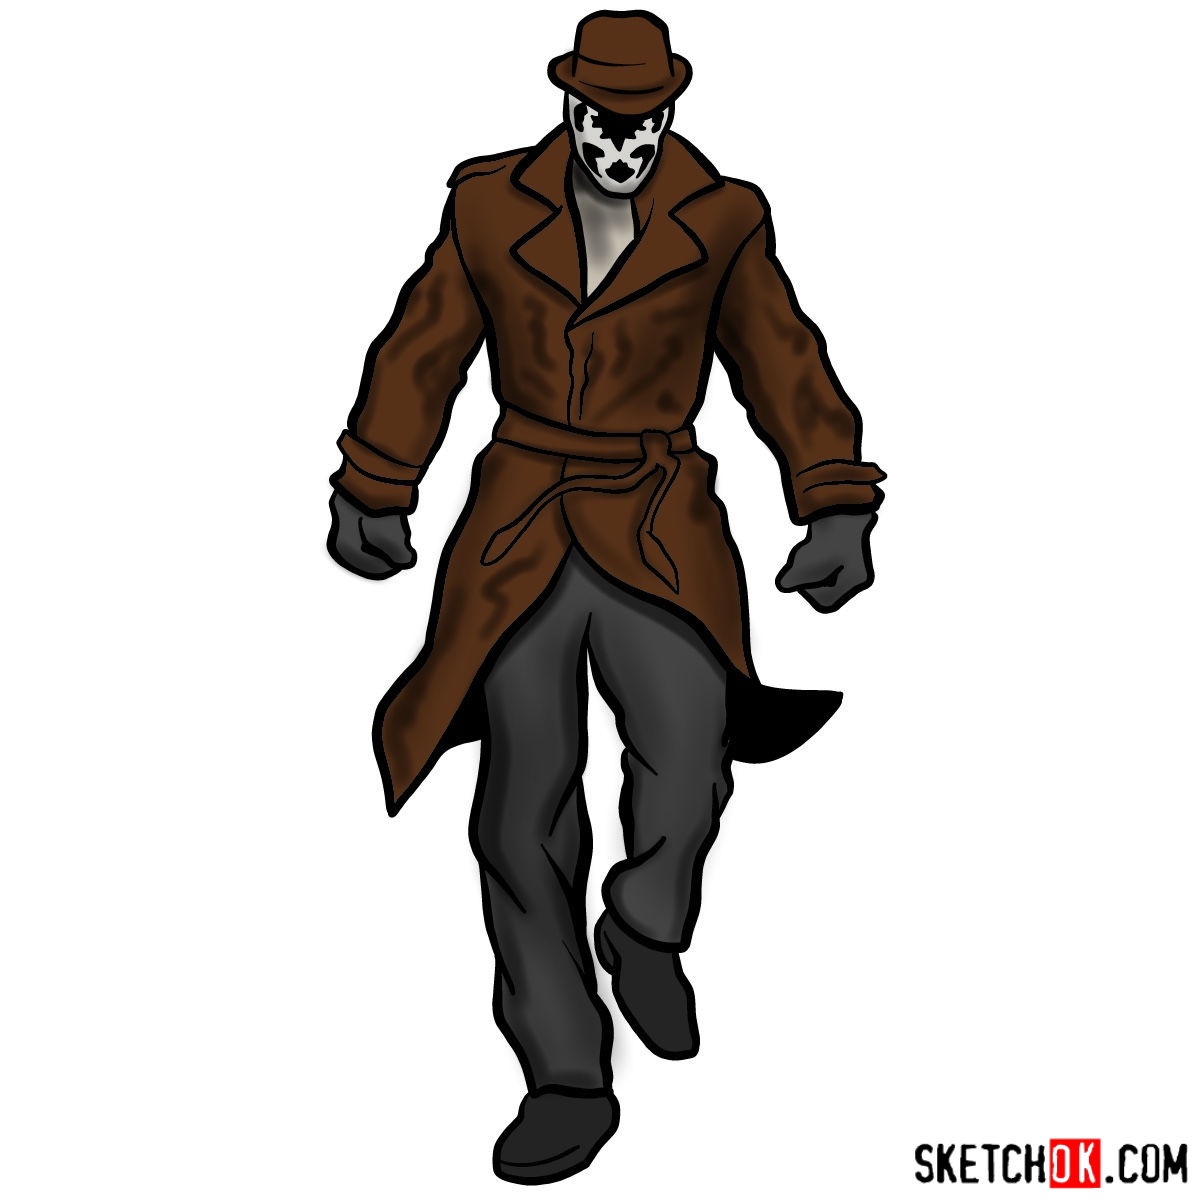 How to draw Rorschach from Watchmen